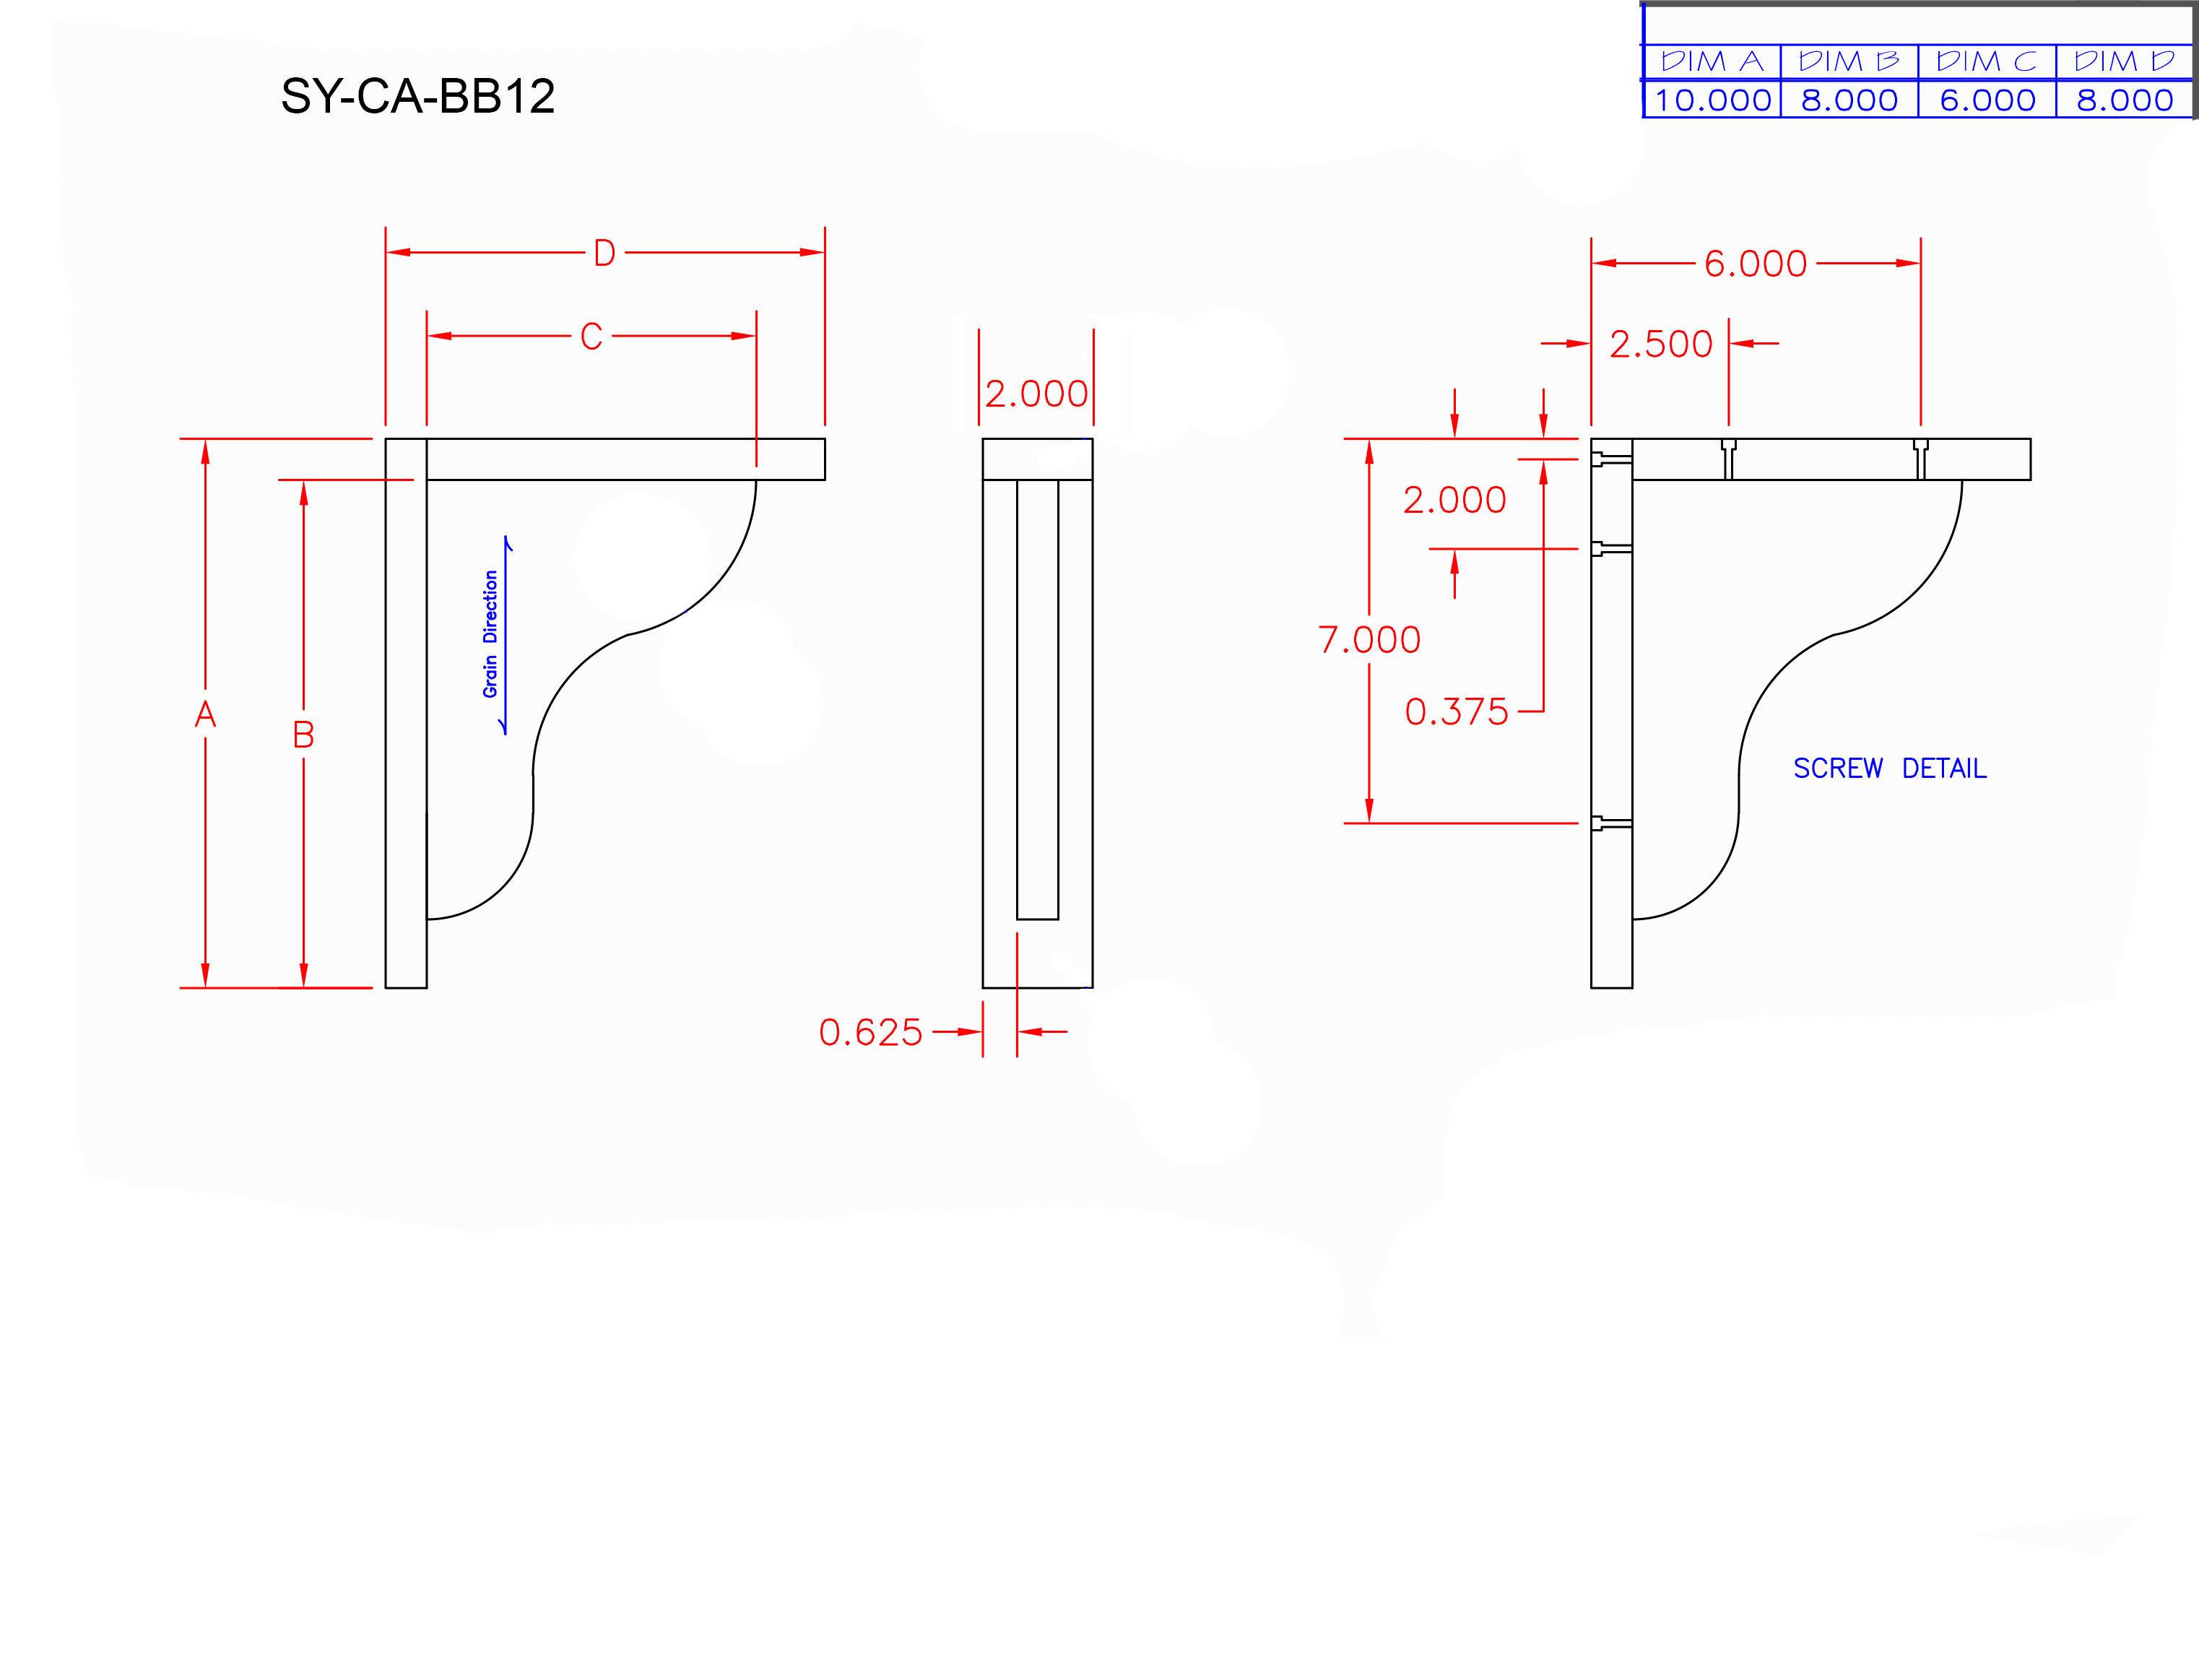 SY-CA-BB12 Line Drawing